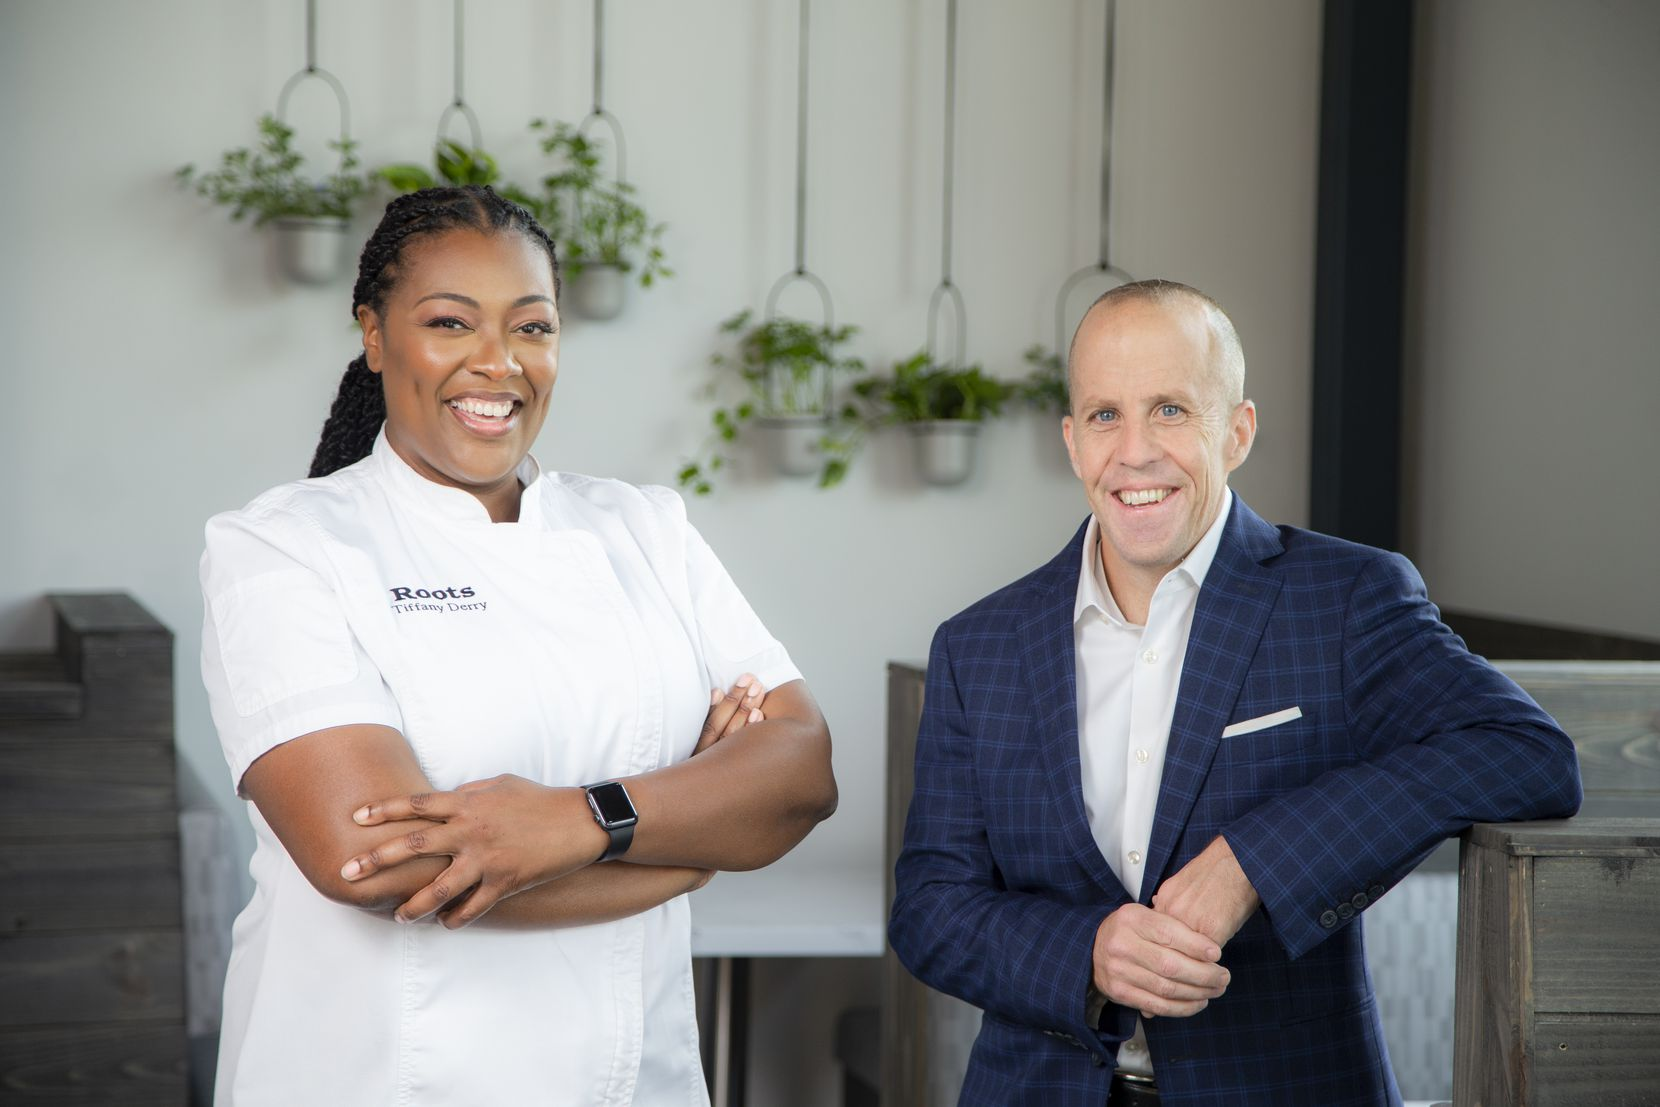 Chef-Owner Tiffany Derry, left, and owner Tom Foley pose for a photo at their restaurant, Roots Southern Kitchen, in Farmers Branch.